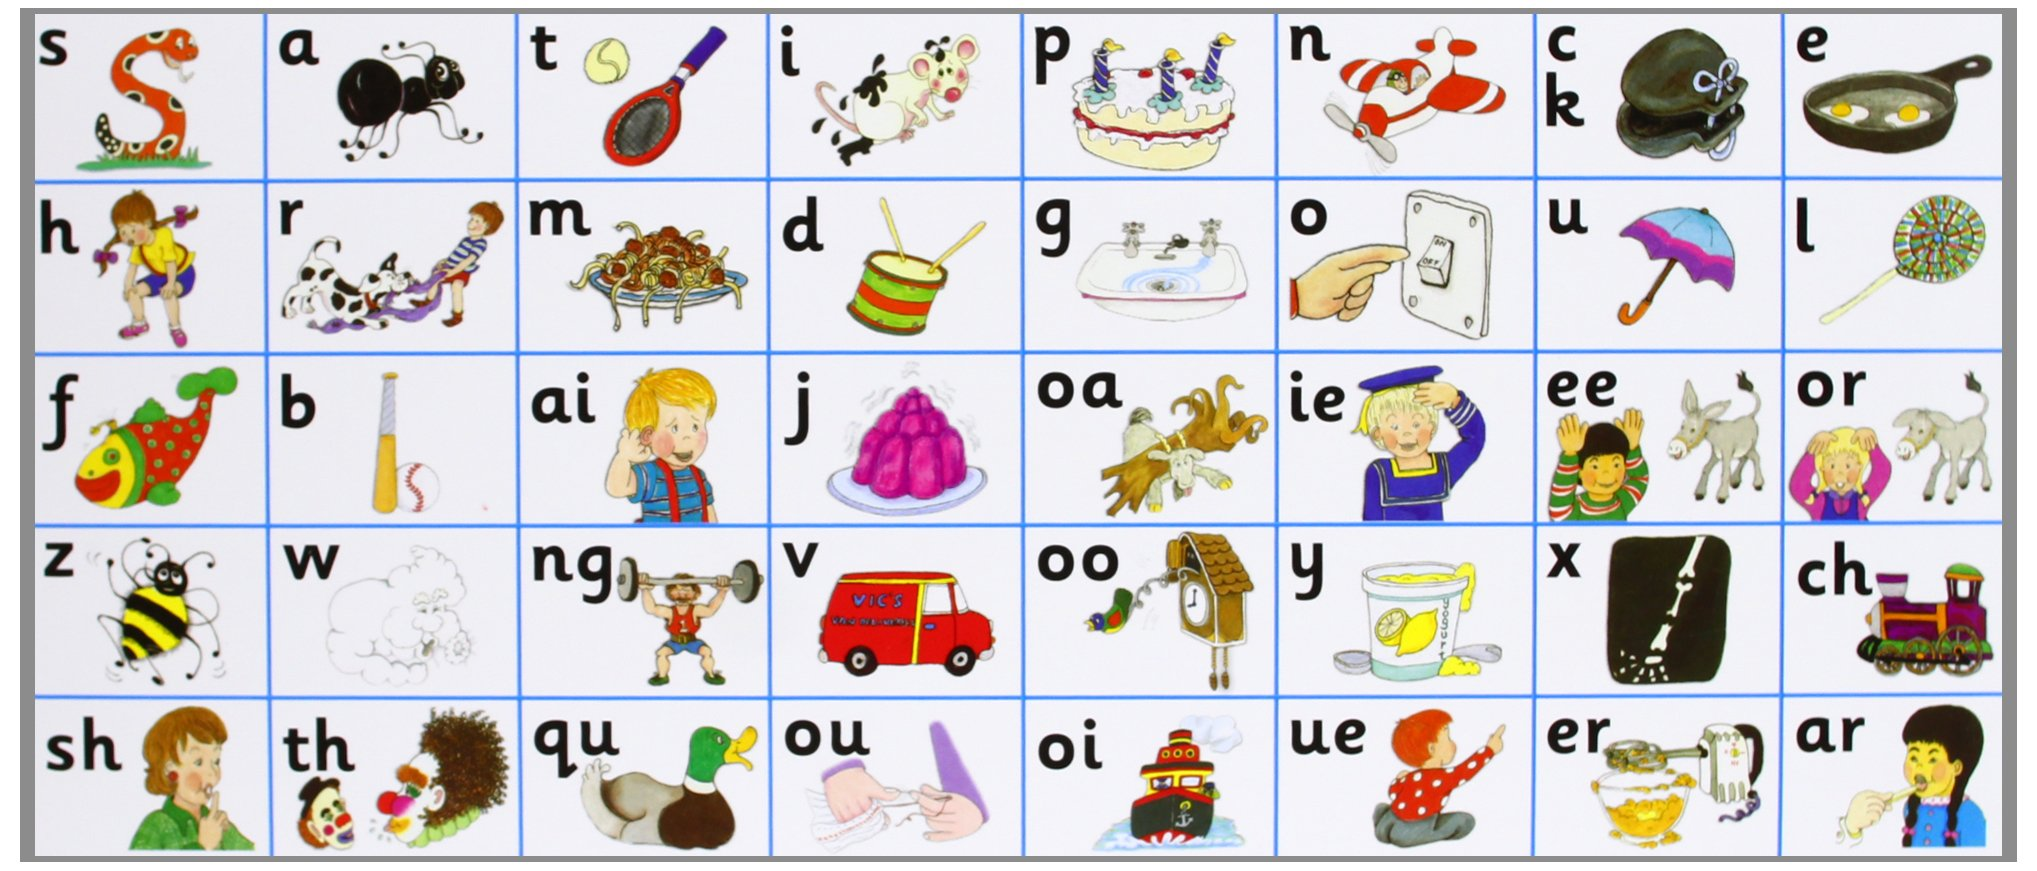 32 Jolly Phonics 42 Sound Songs Free Download Pdf Doc Zip